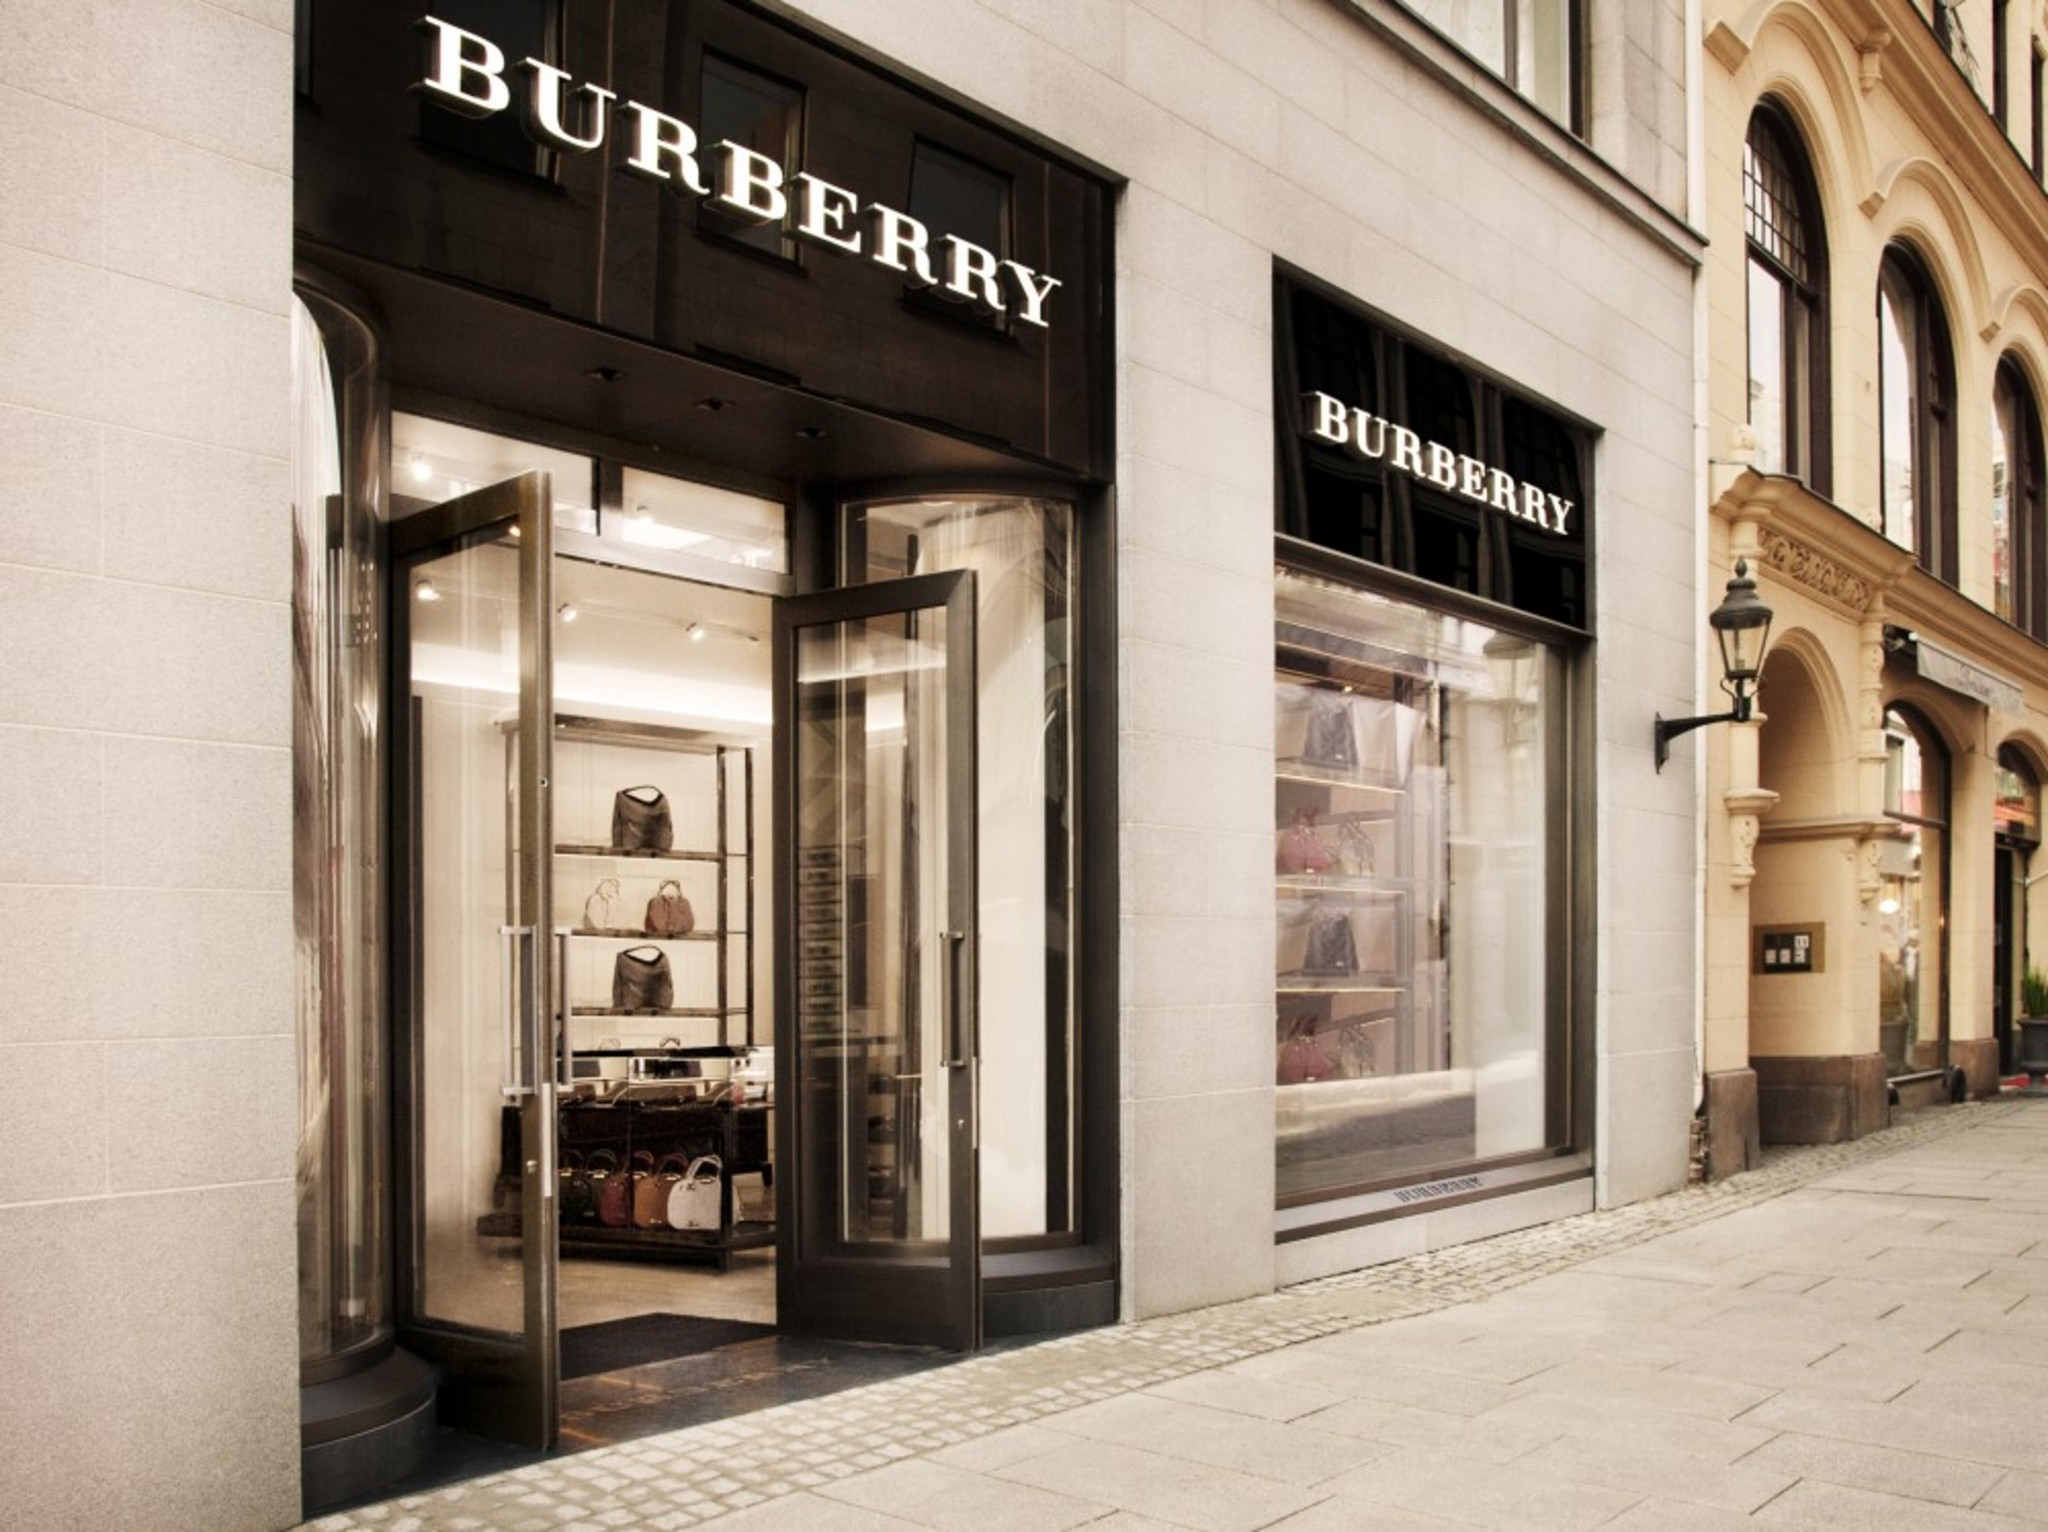 7c1cc1f3476 BURBERRY – Store Opening, Oslo! 2014 STORE IMAGES OSLO CROPPED 02  2014 STORE IMAGES OSLO CROPPED 01 BURBERRY OPENS ITS FIRST STORE ...